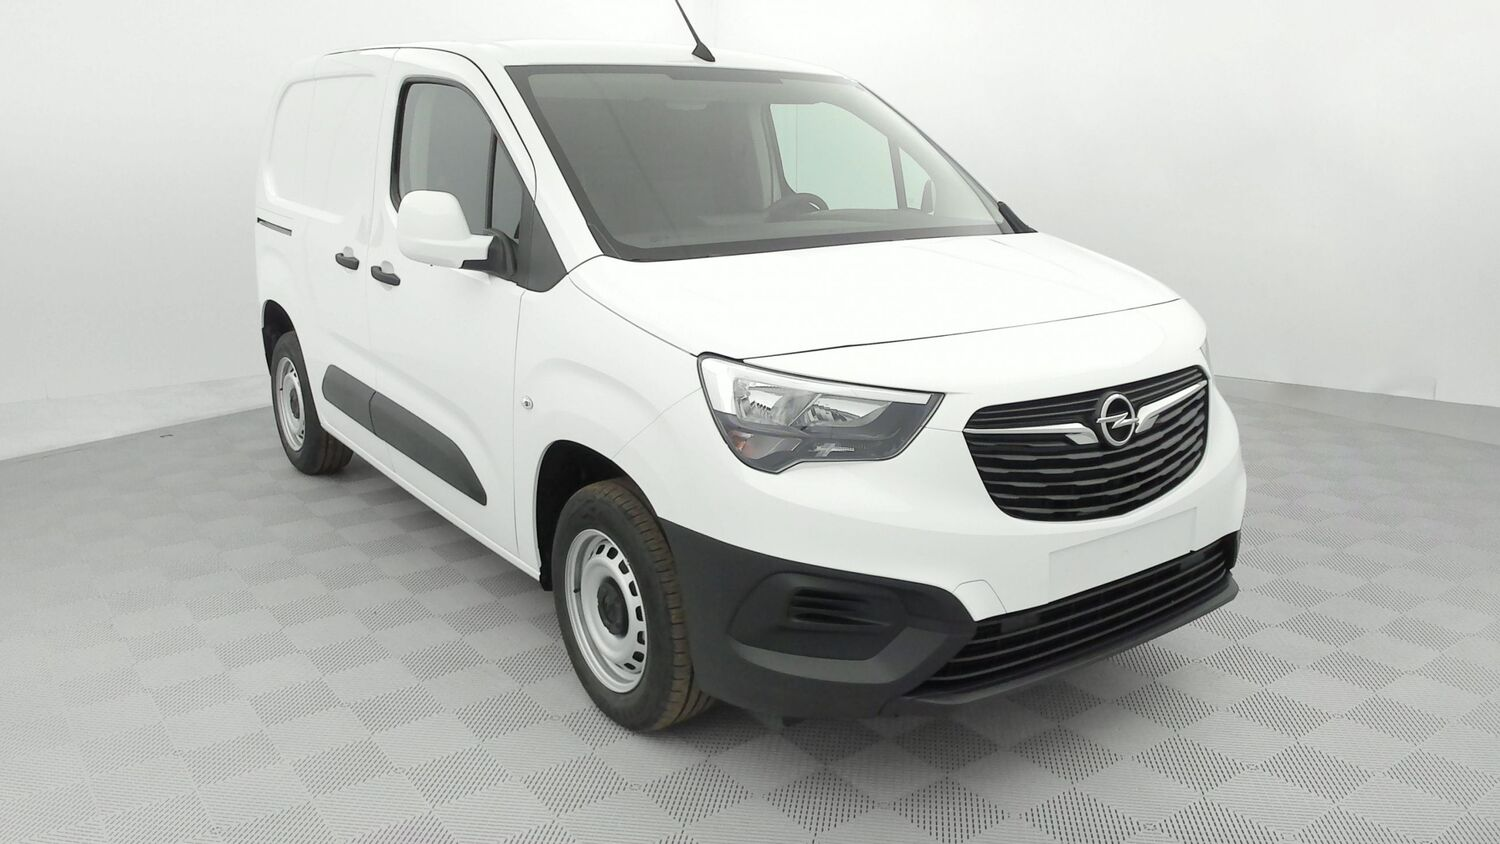 OPEL COMBO L1 3 PLACES 1.5L TD 100 CH STD PACK CLIM 257 € HT/MOIS